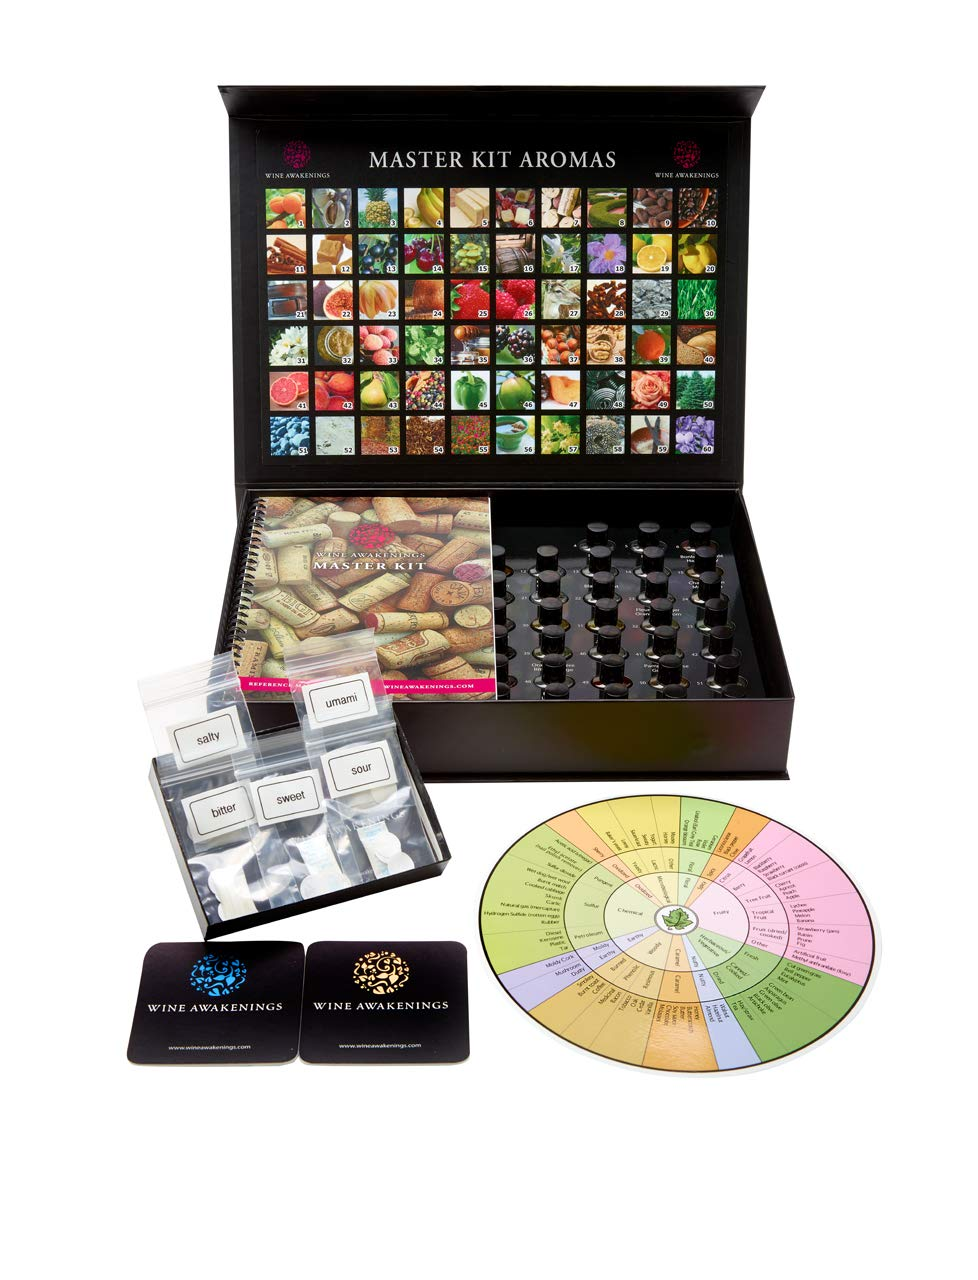 Wine Aroma Kit- Master Kit 60 Wine Aromas Magnum Edition. 50 page Reference Manual, Taste Discs, Anne Noble Wine Tasting Wheel. The most prevalent aromas from all varietals. Guaranteed for 10 years!